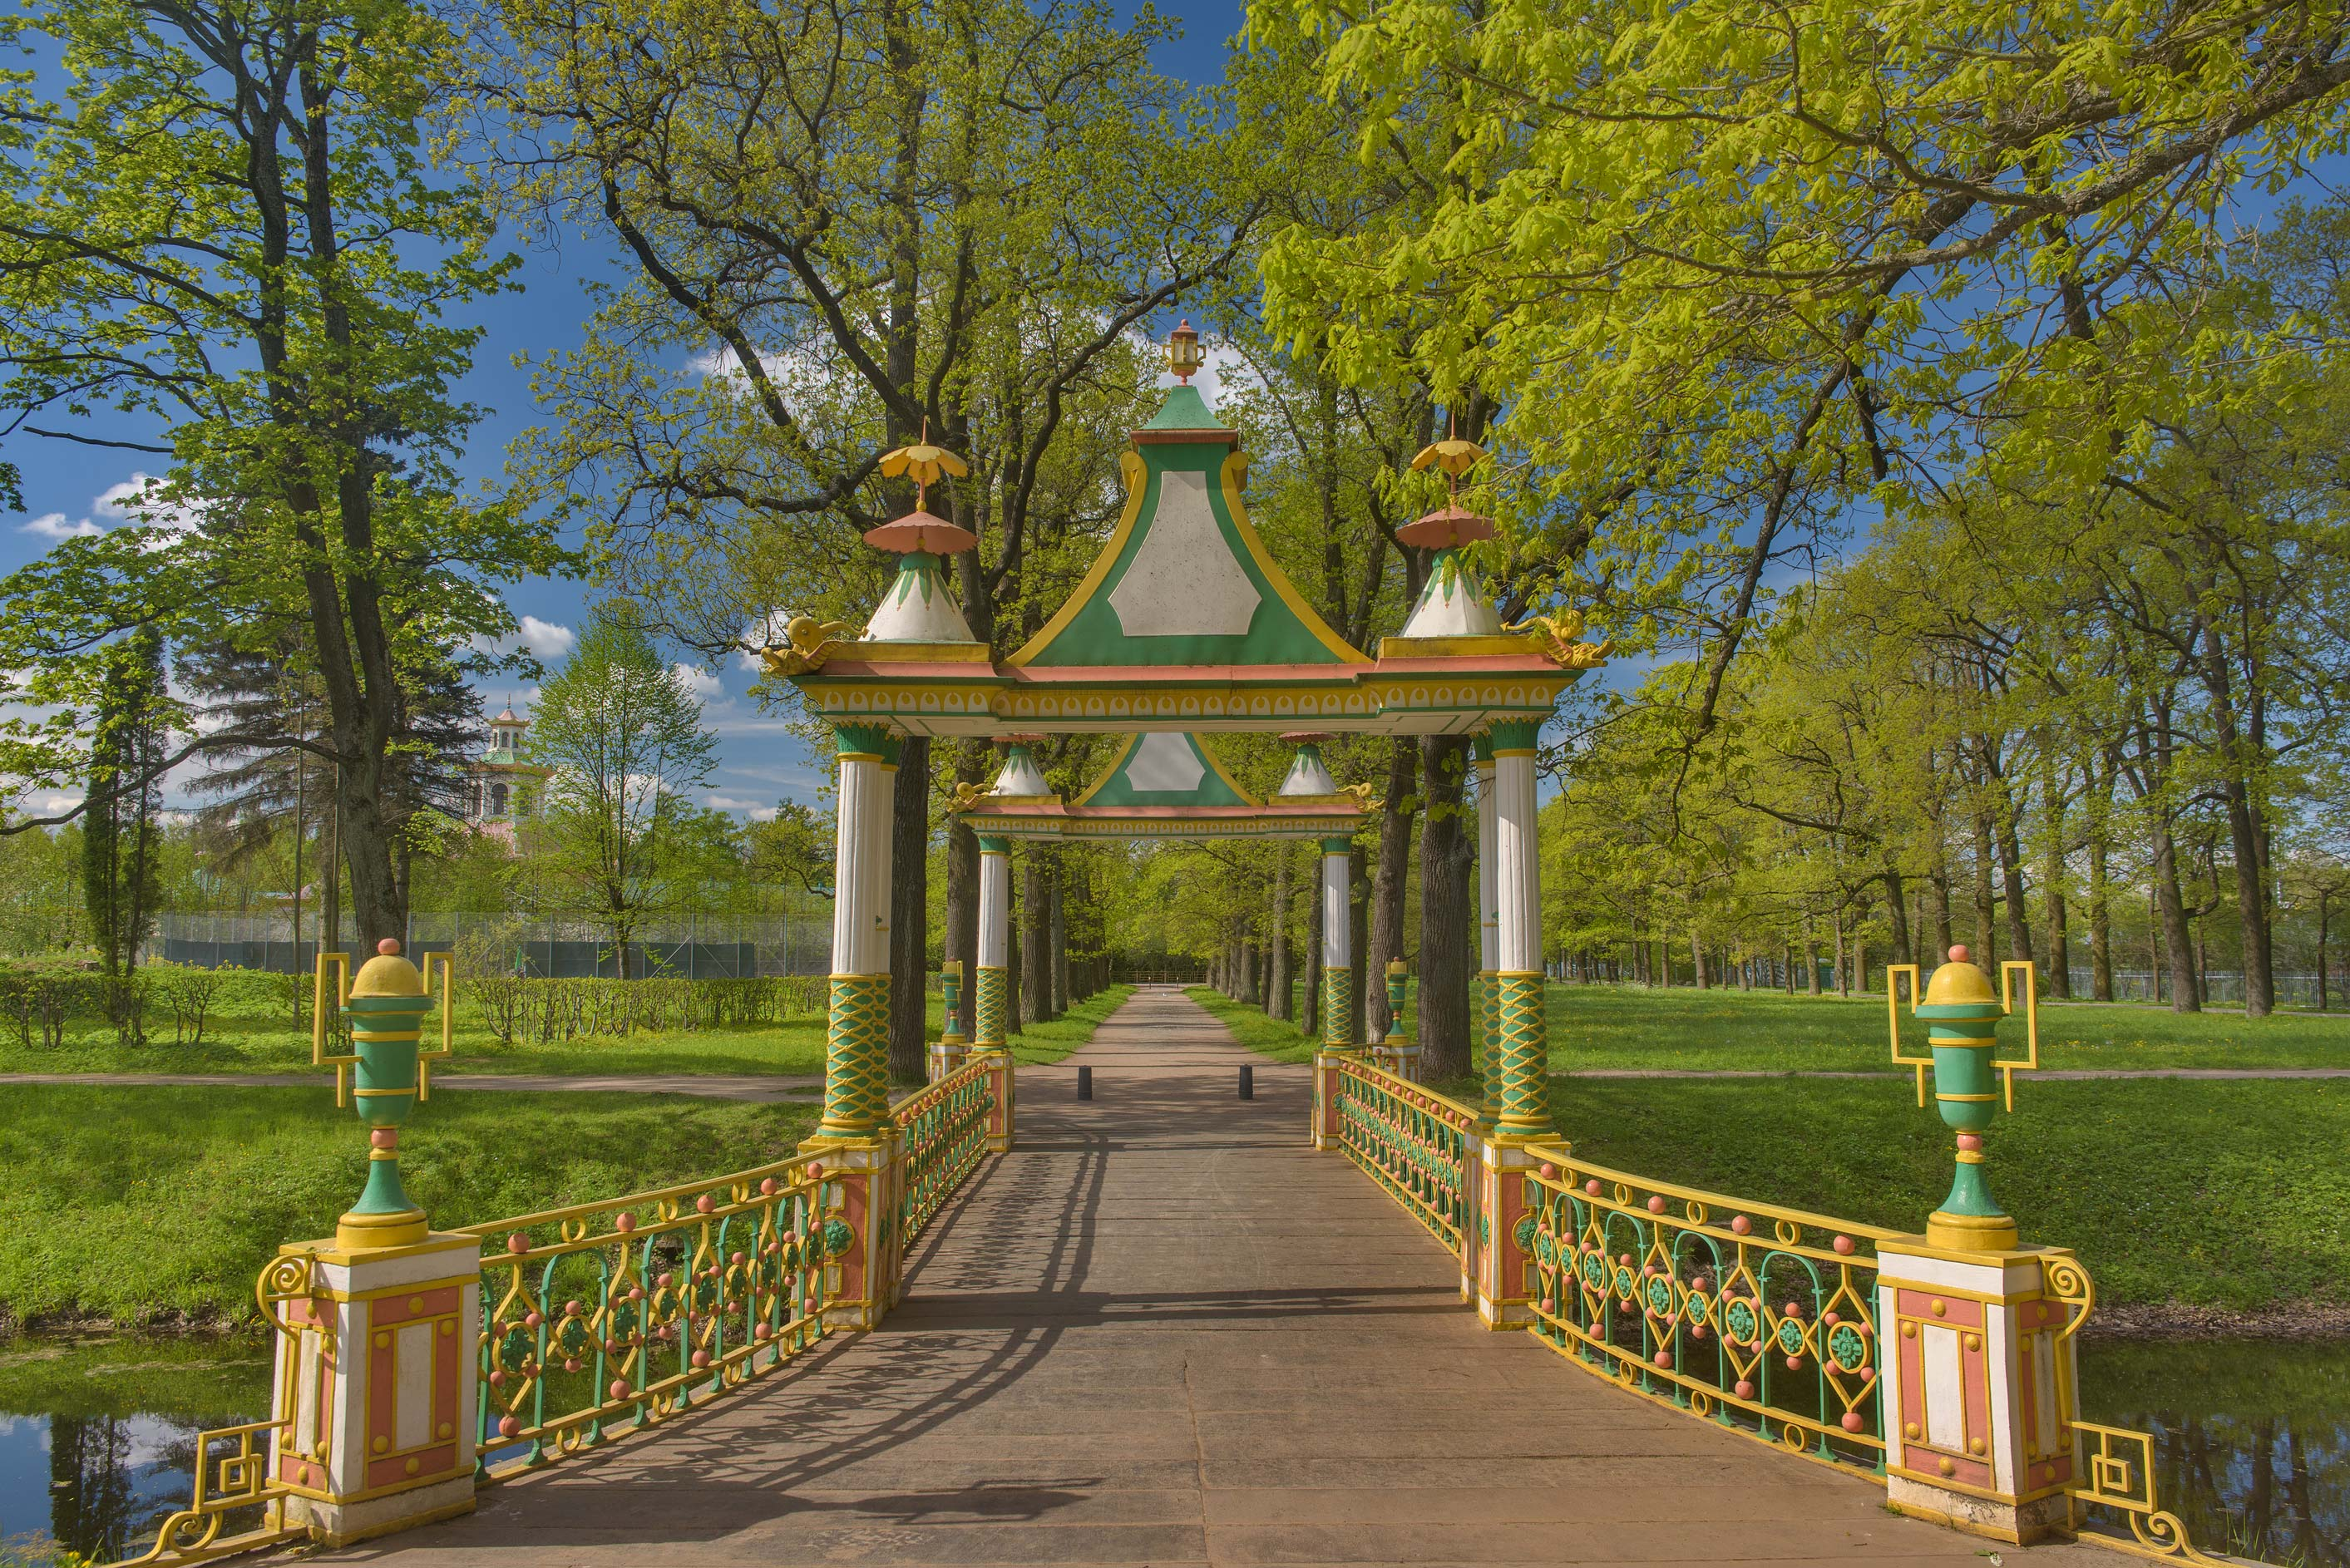 Chineese Bridge in Aleksandrovsky Park. Pushkin...south from St.Petersburg, Russia